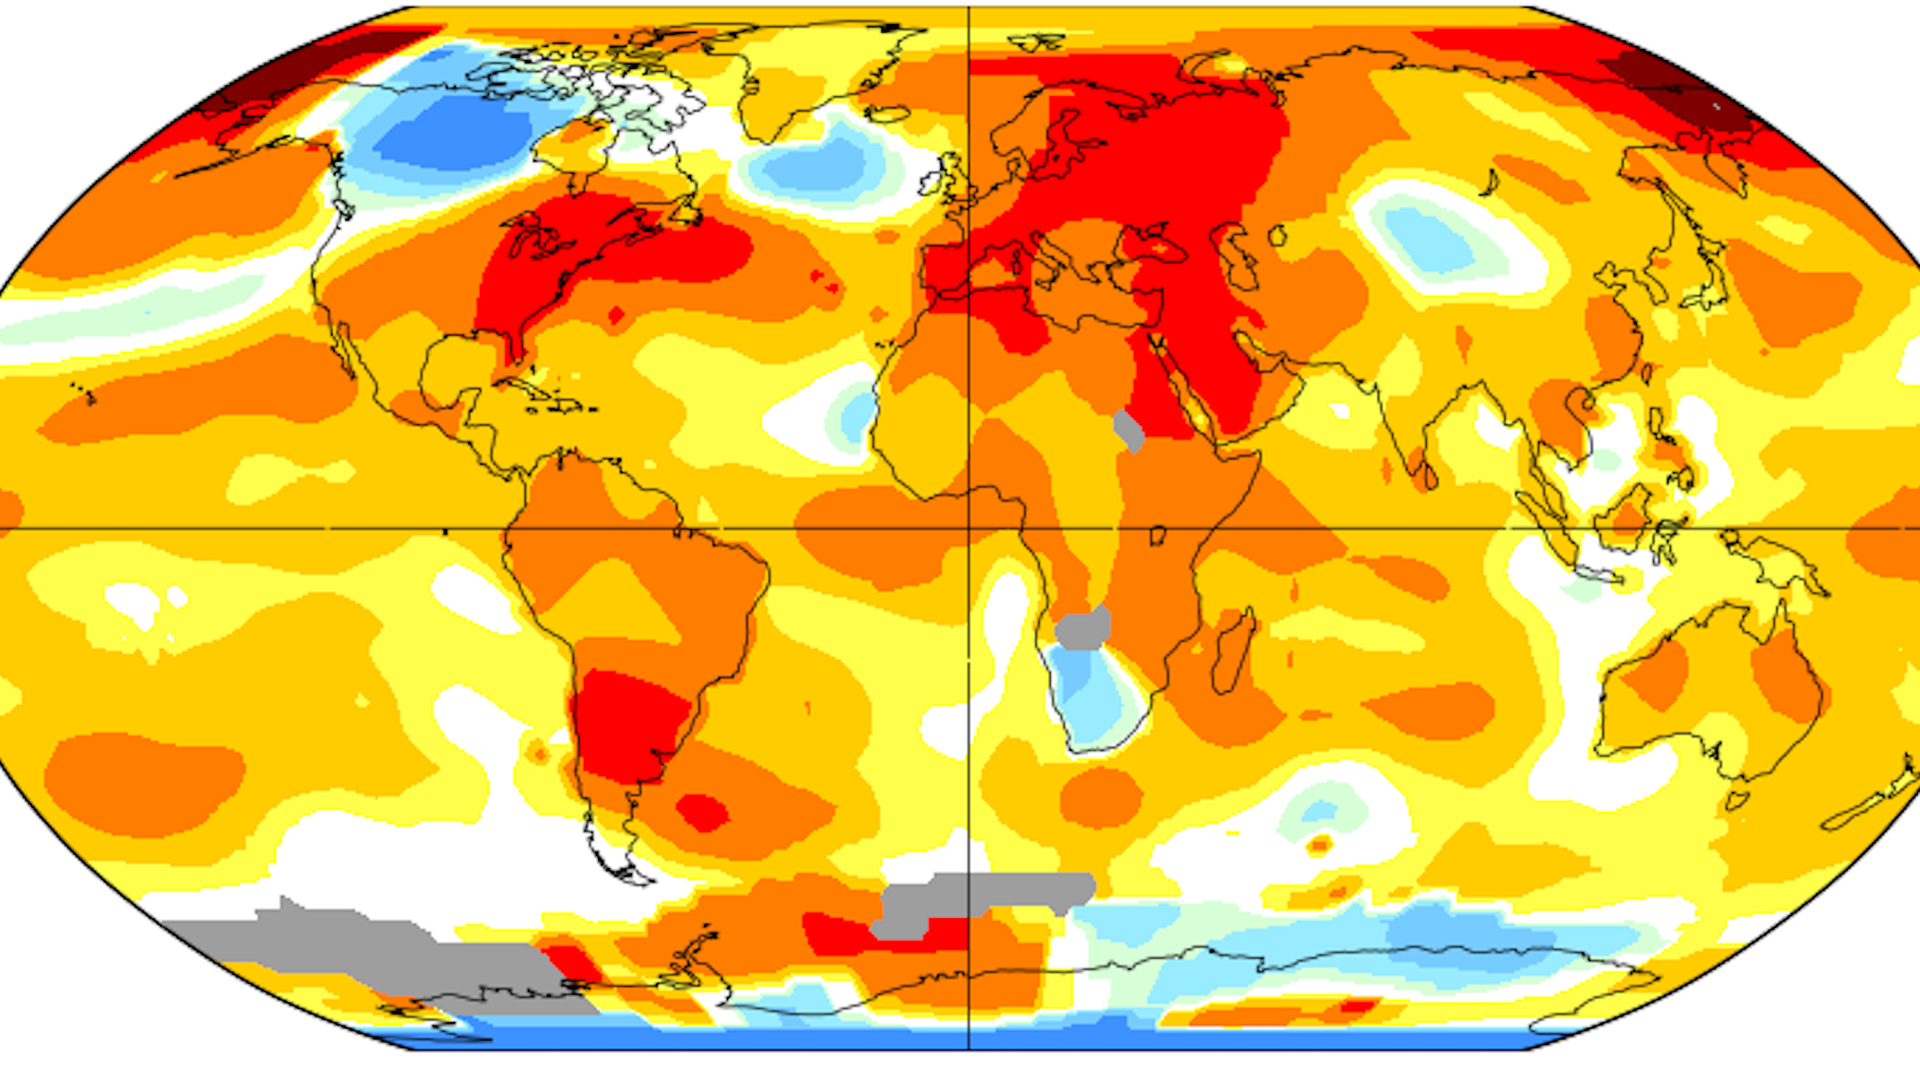 September ranked as the 5th-warmest such month on record dating back to 1895.